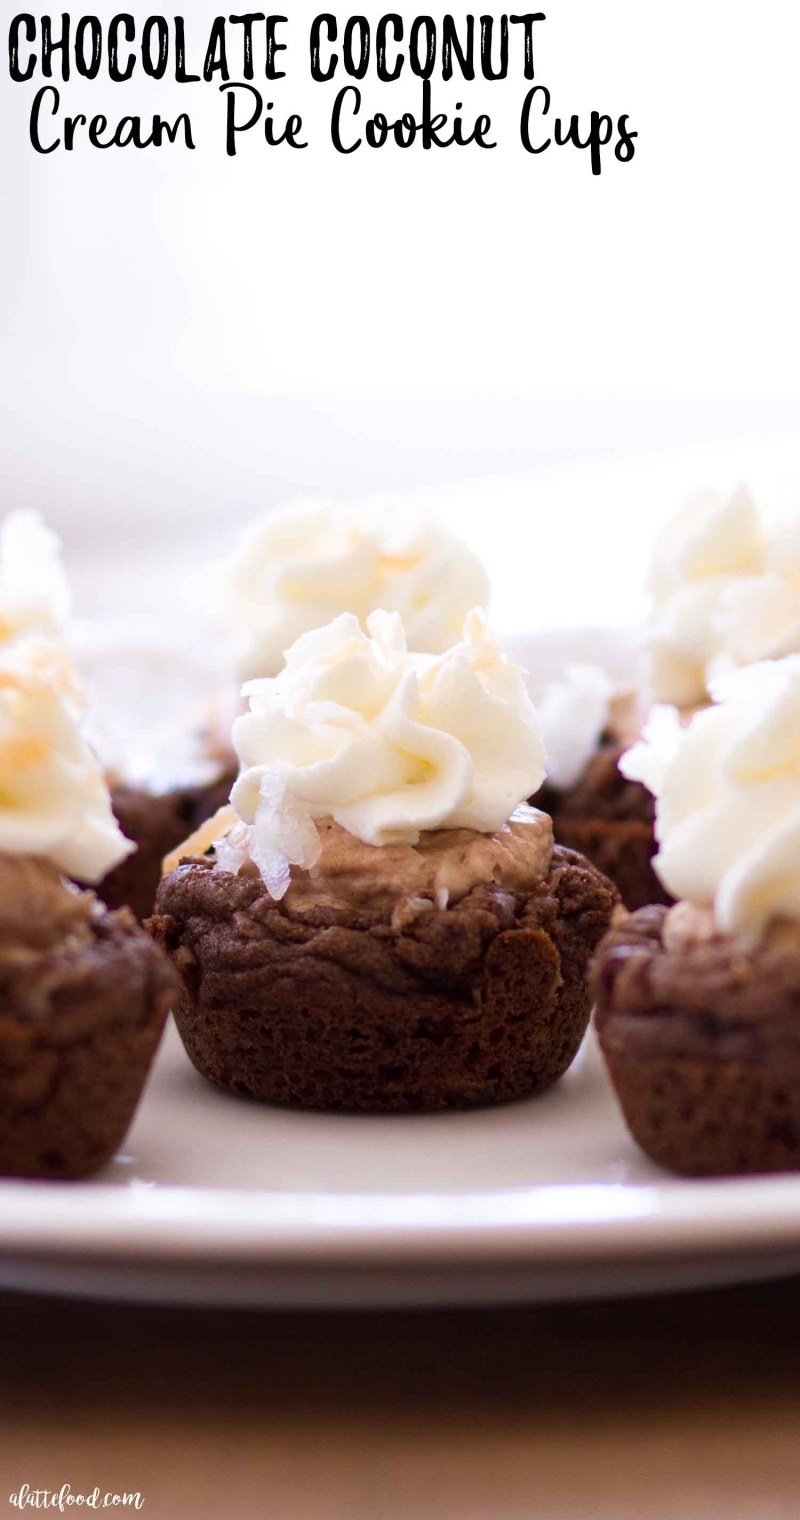 Easy Chocolate Coconut Cream Pie Cookie Cups with stabilized whipped cream.